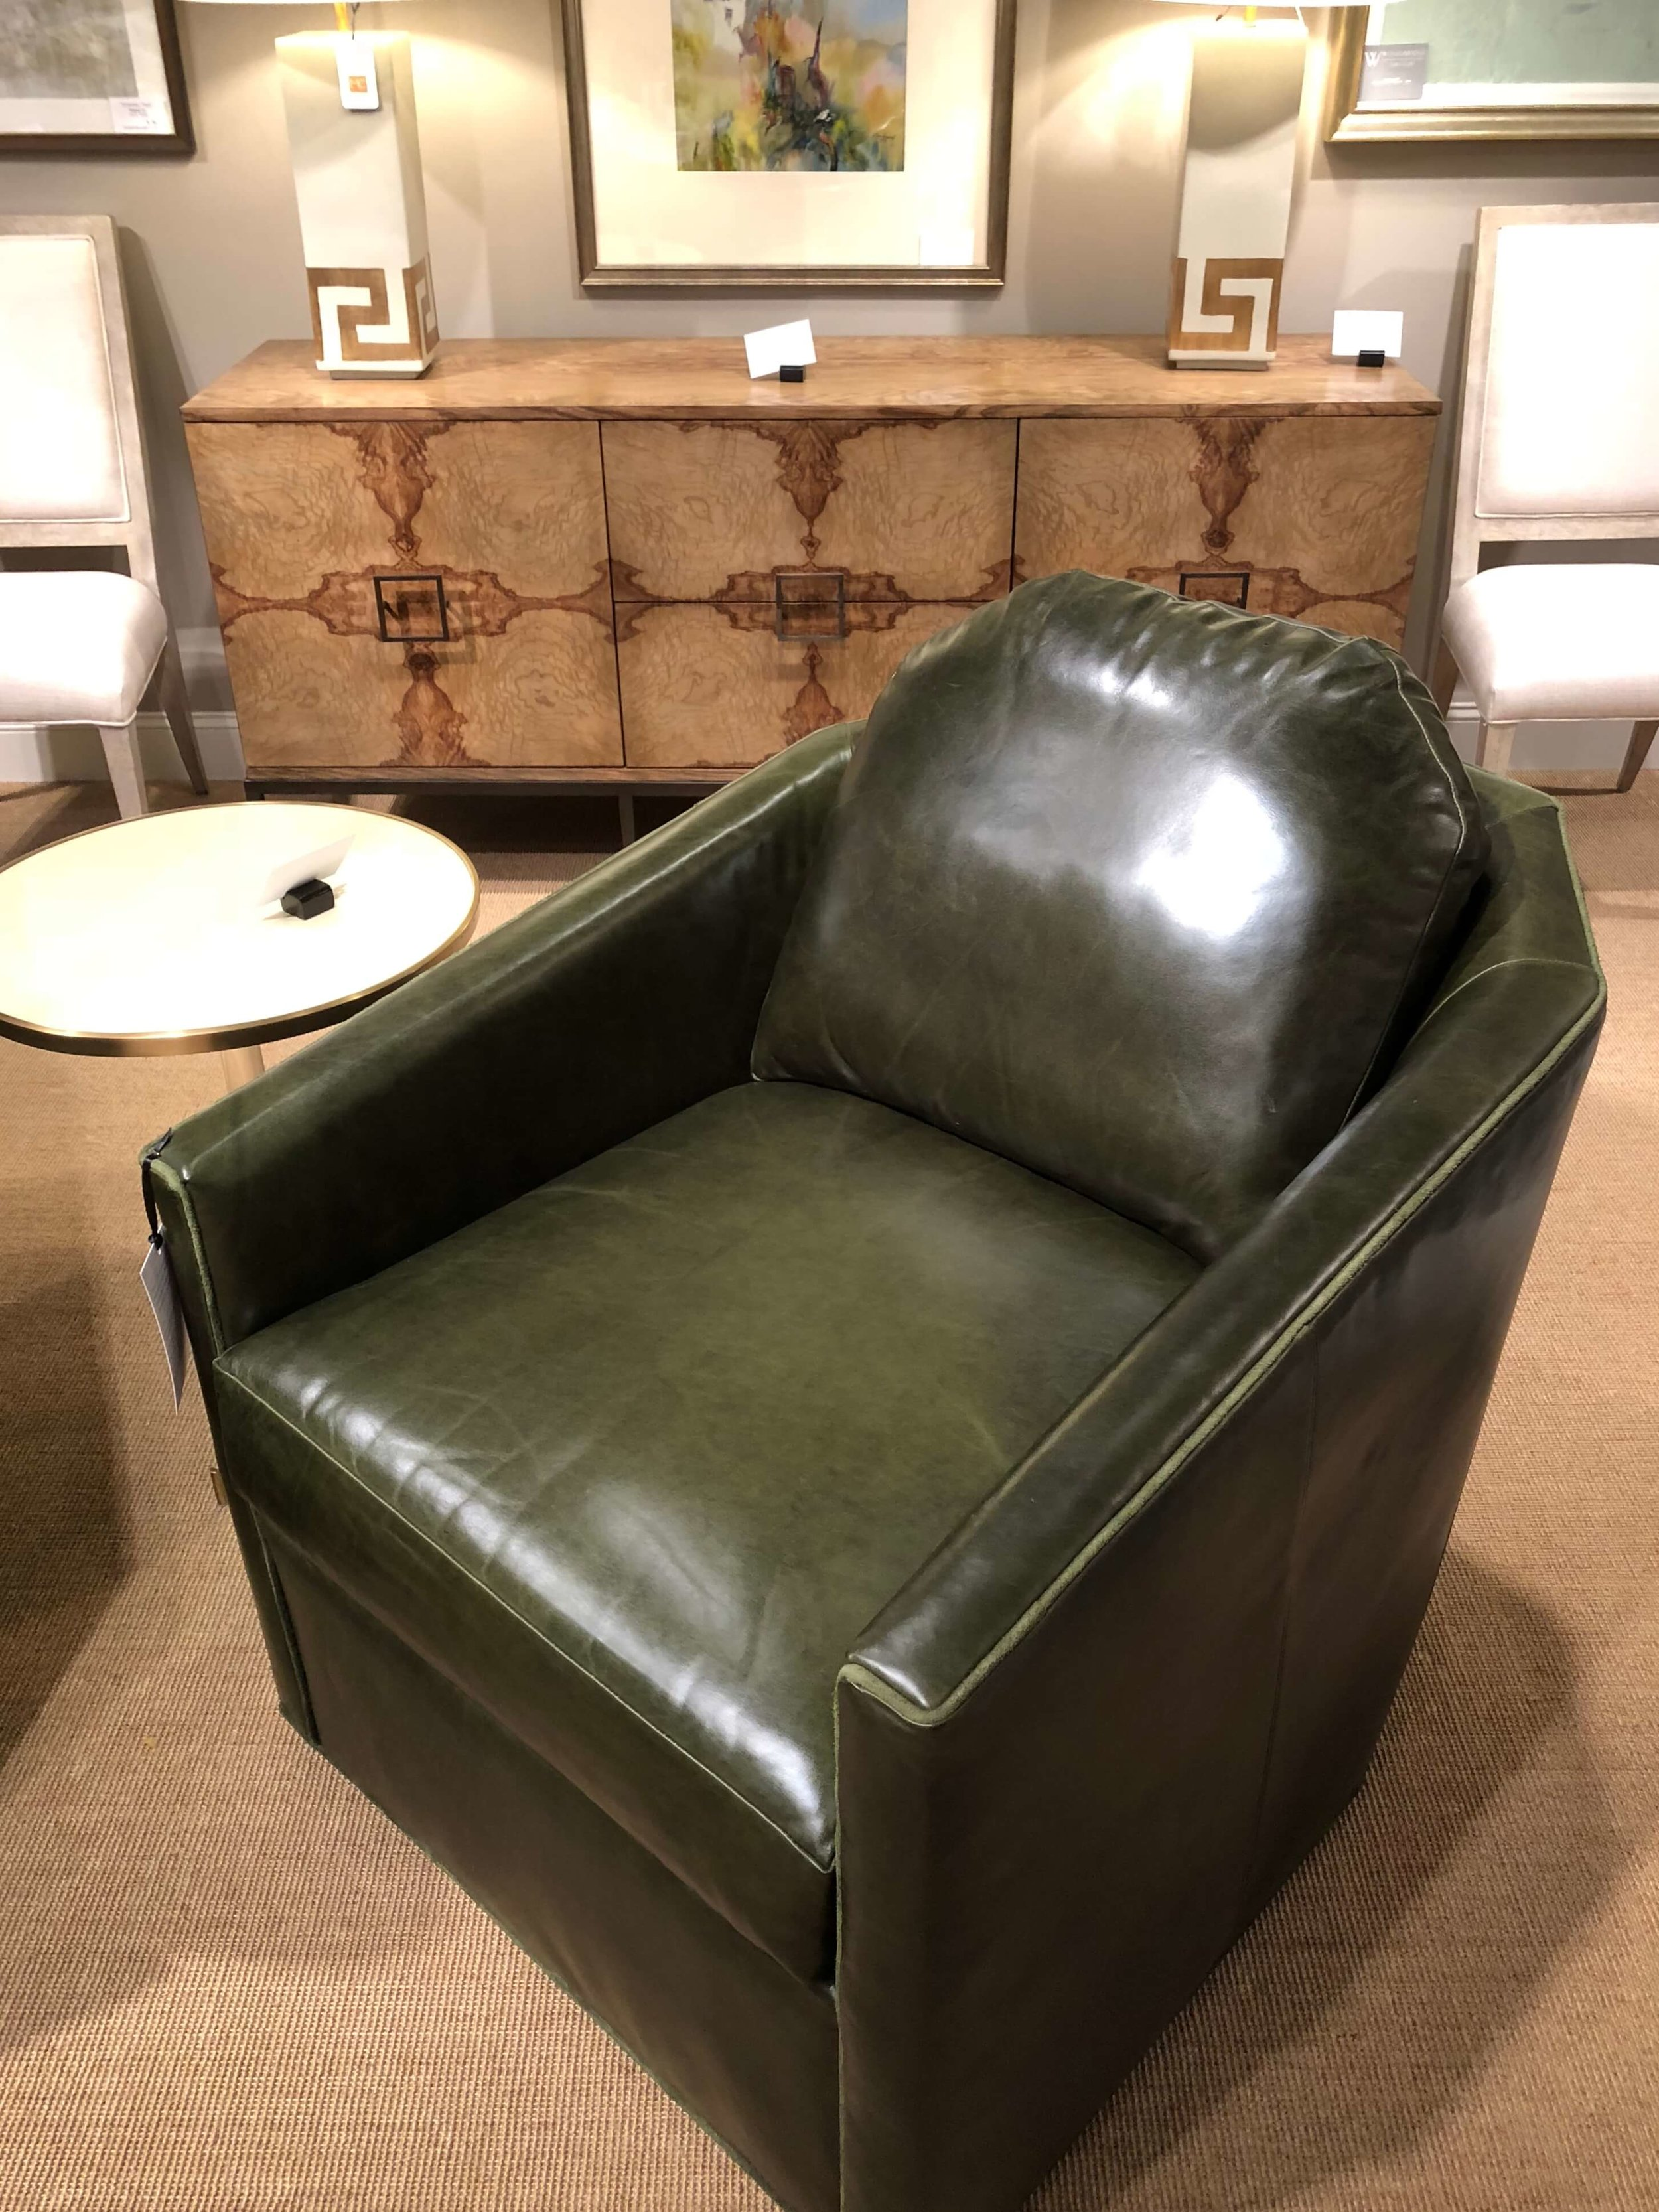 This gorgeous olive green tub chair from CR Laine looks great paired with the warm wood of the console from Woodbridge. That console was one of the finalists for a Pinnacle Award this market.